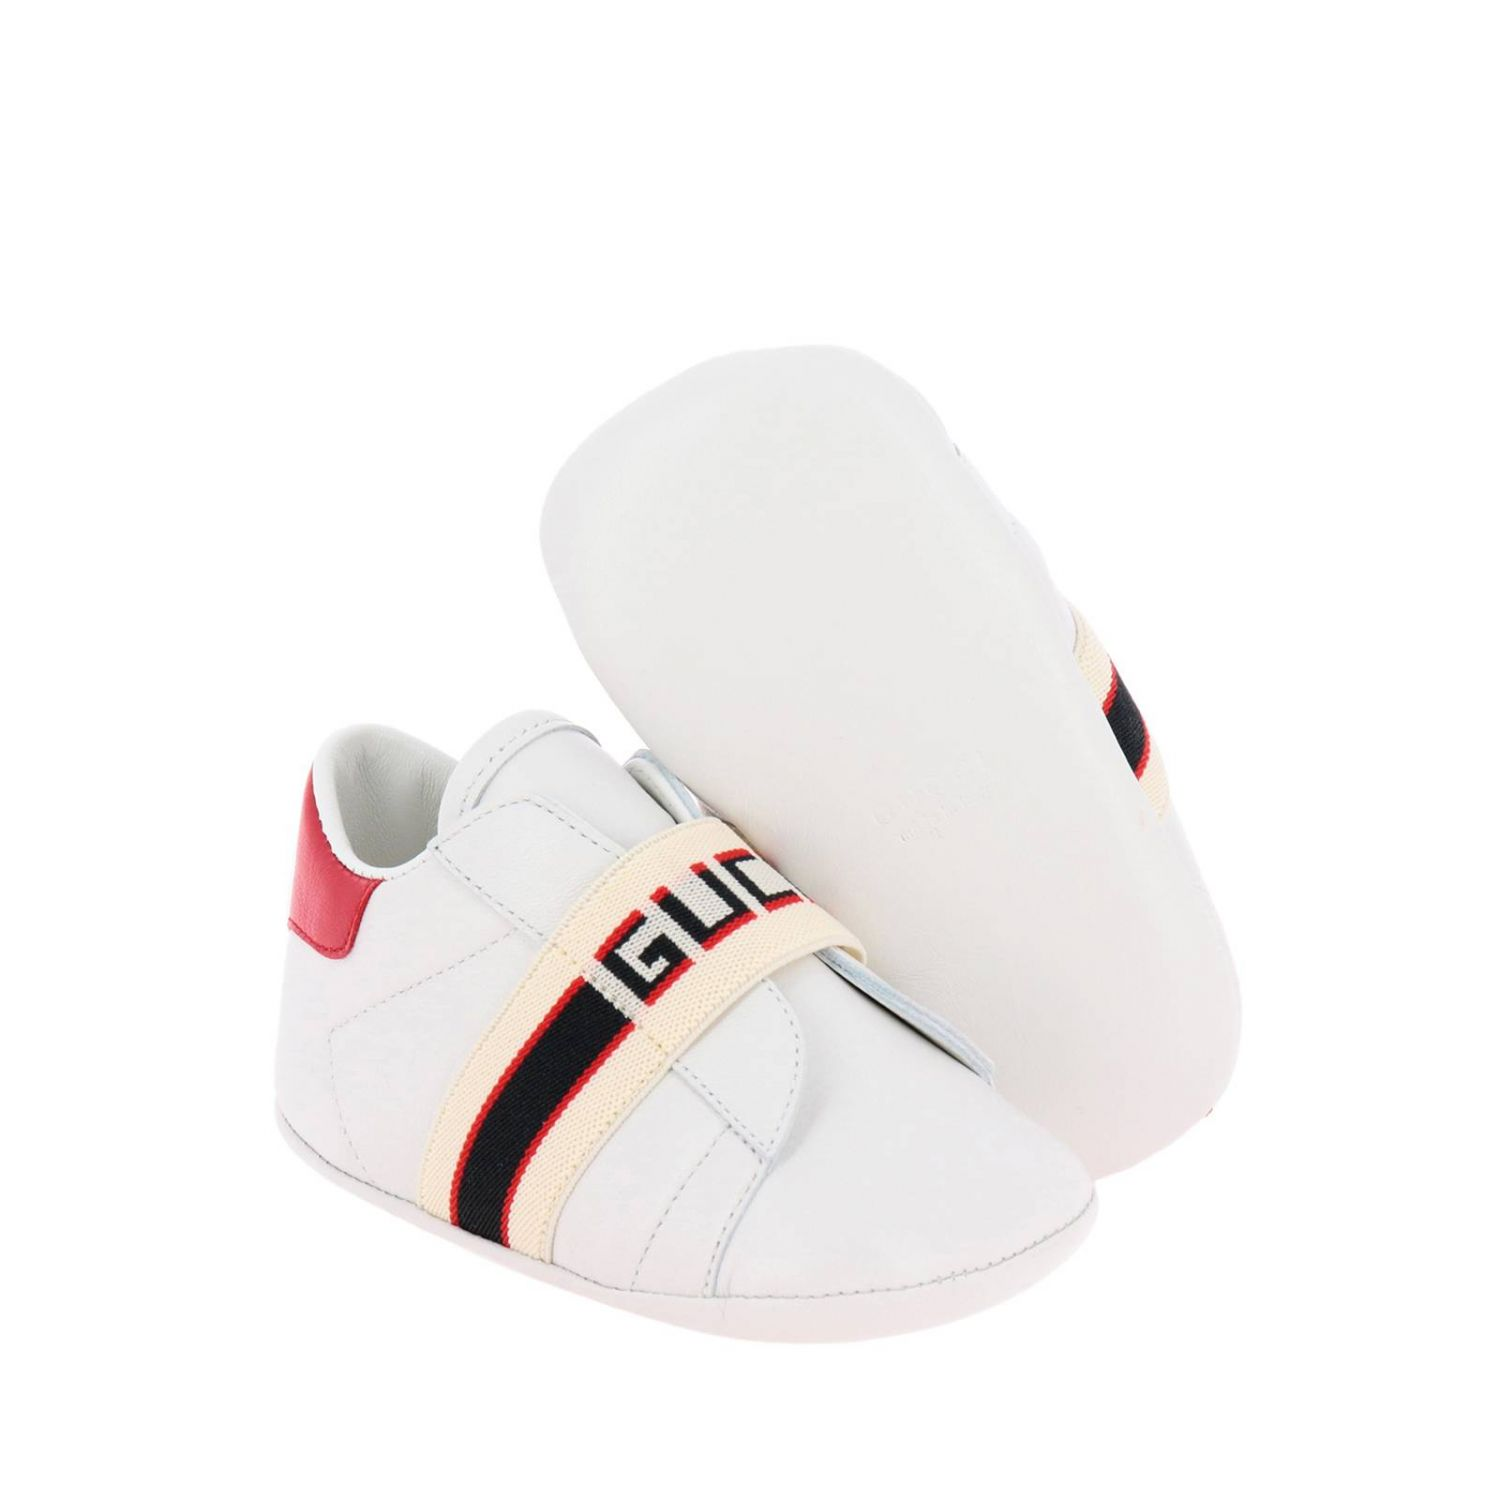 Shoes kids Gucci white 2